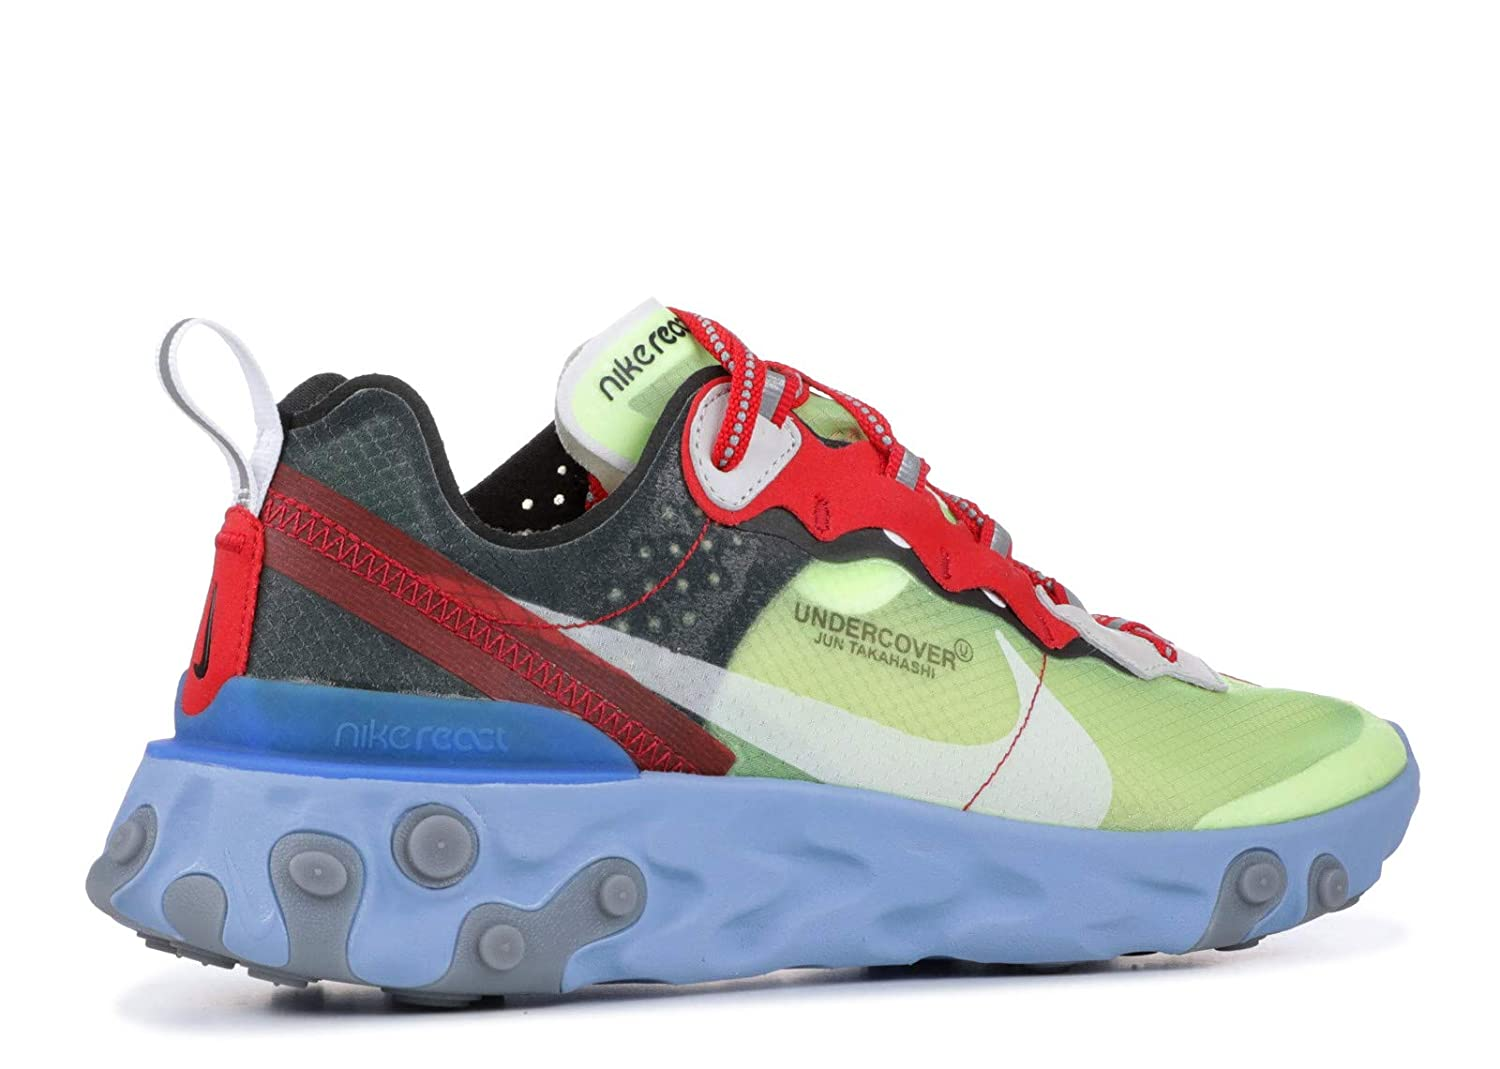 huge selection of 23d6d 45f4a Amazon.com   Nike React Element 87 Undercover - US 7.5   Shoes